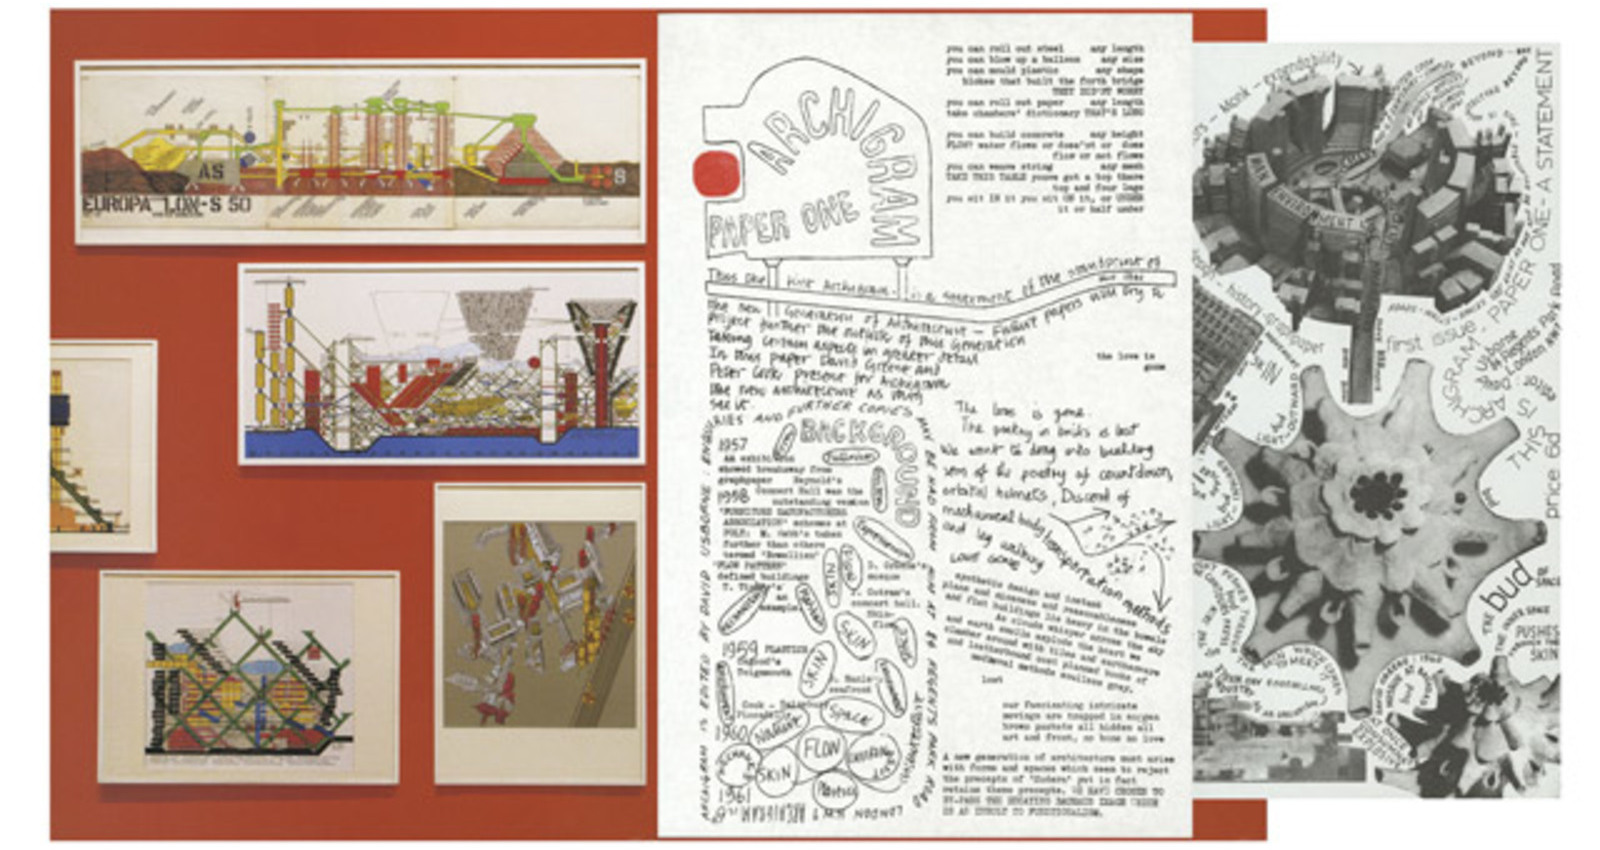 ARCHIGRAM: experimental architecture 1961-1974